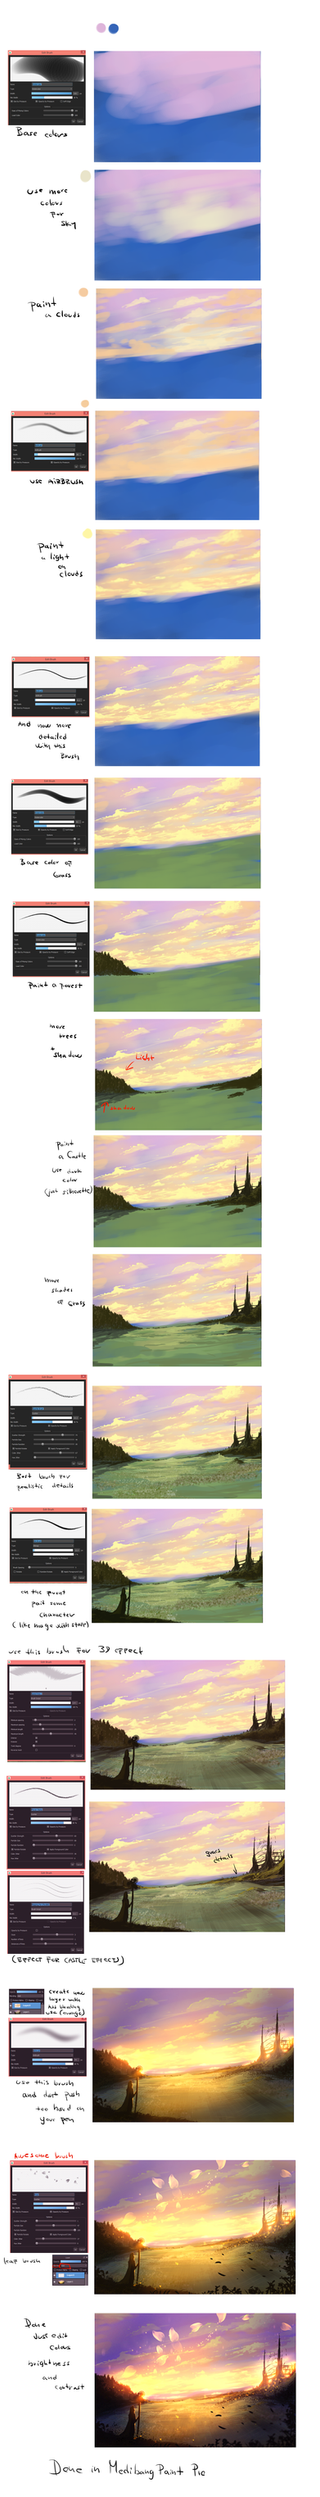 SCENERY TUTORIAL by ryky